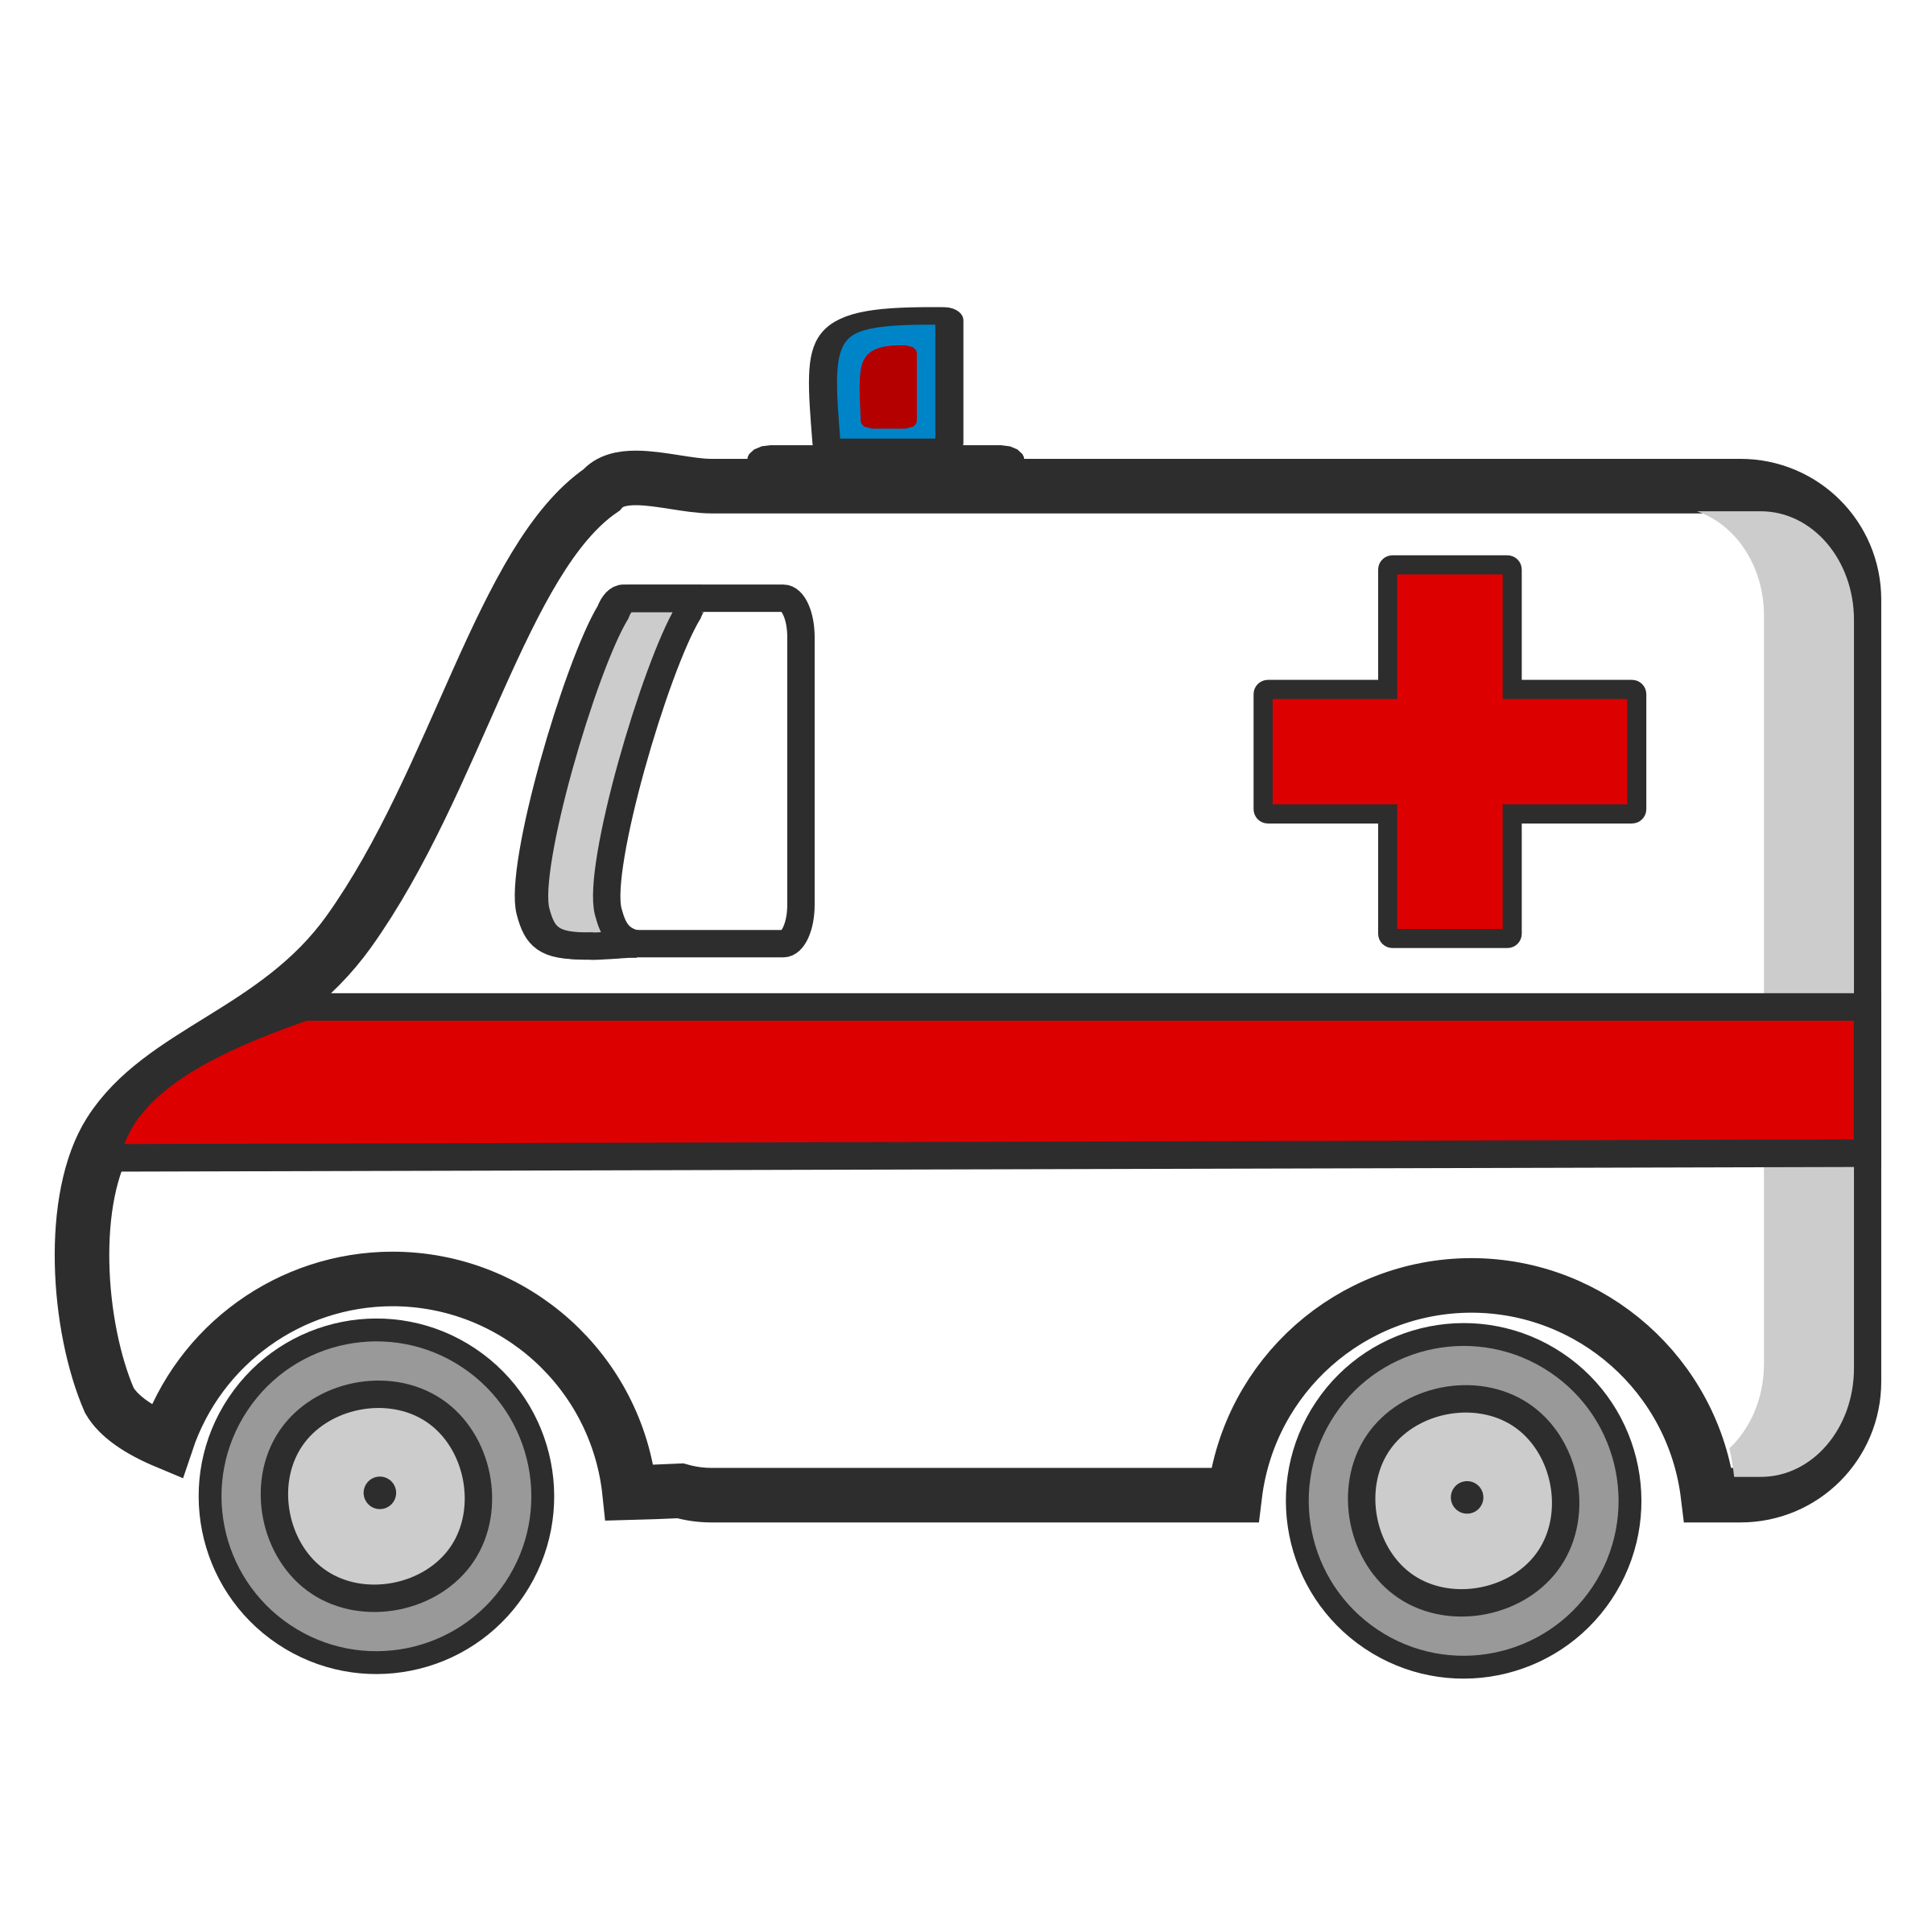 Free images . Ambulance clipart printable